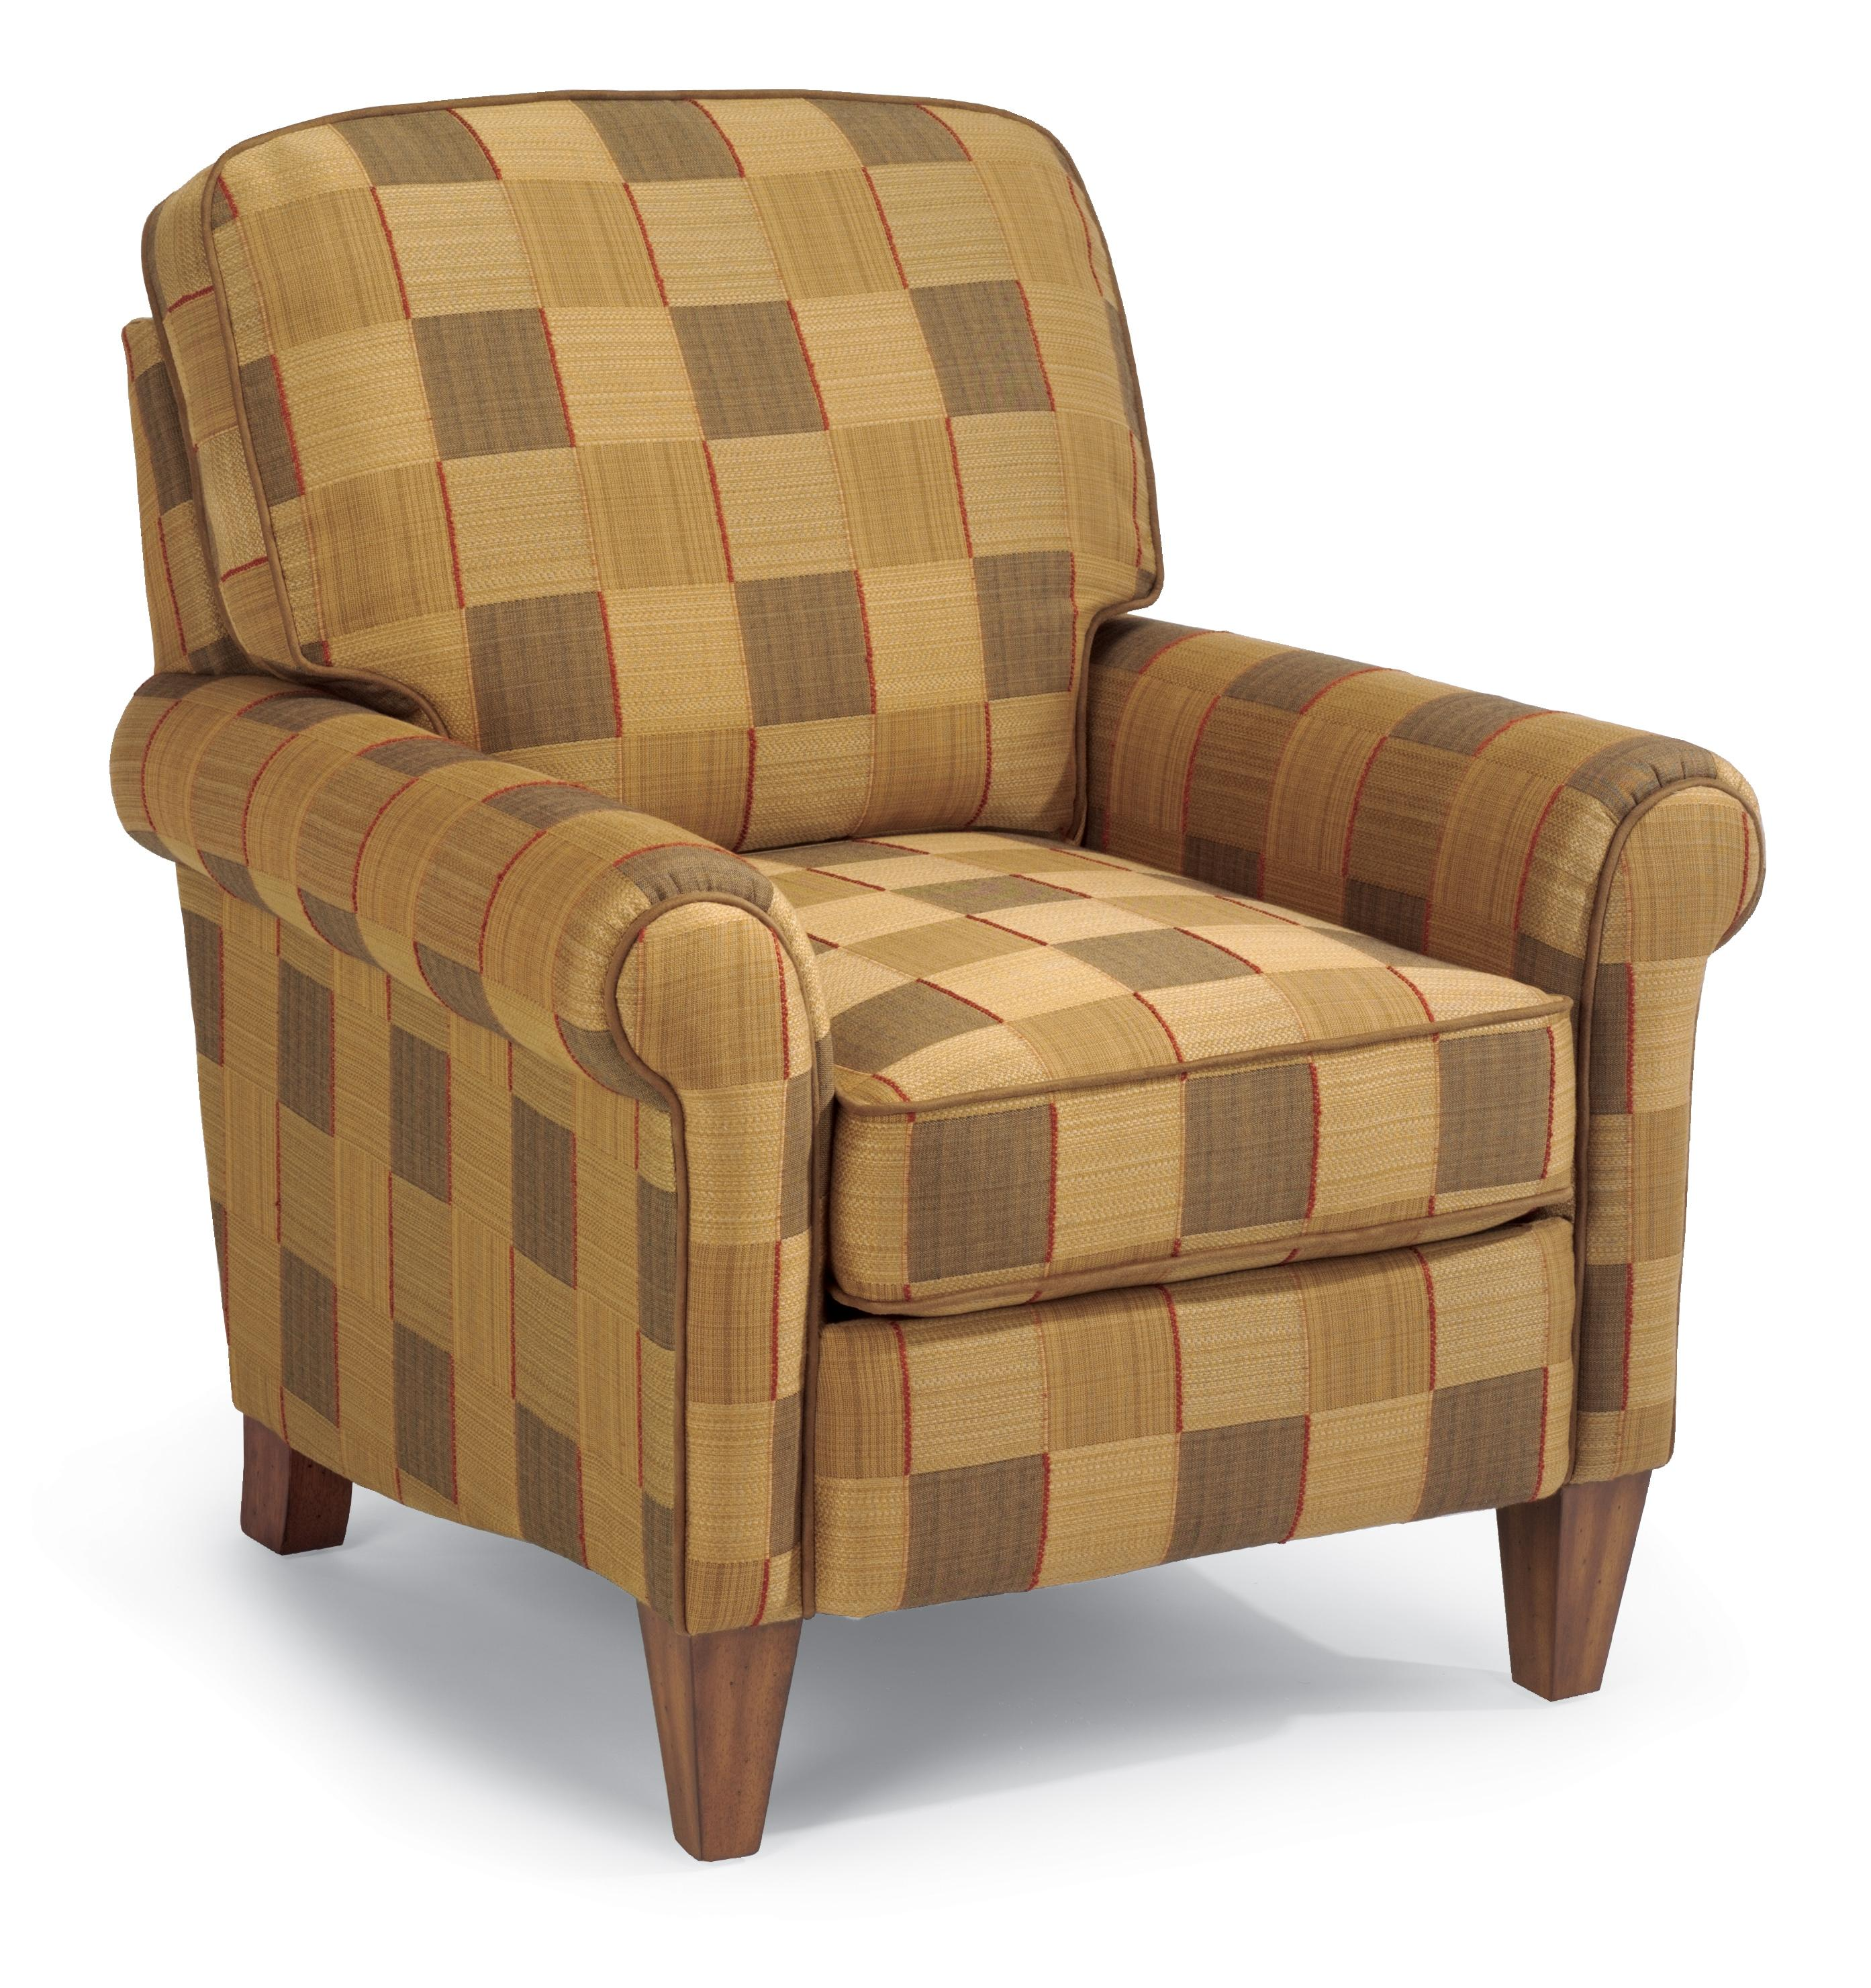 Flexsteel Accents 009c 10 Harvard Chair Furniture And Appliancemart Upholstered Chairs